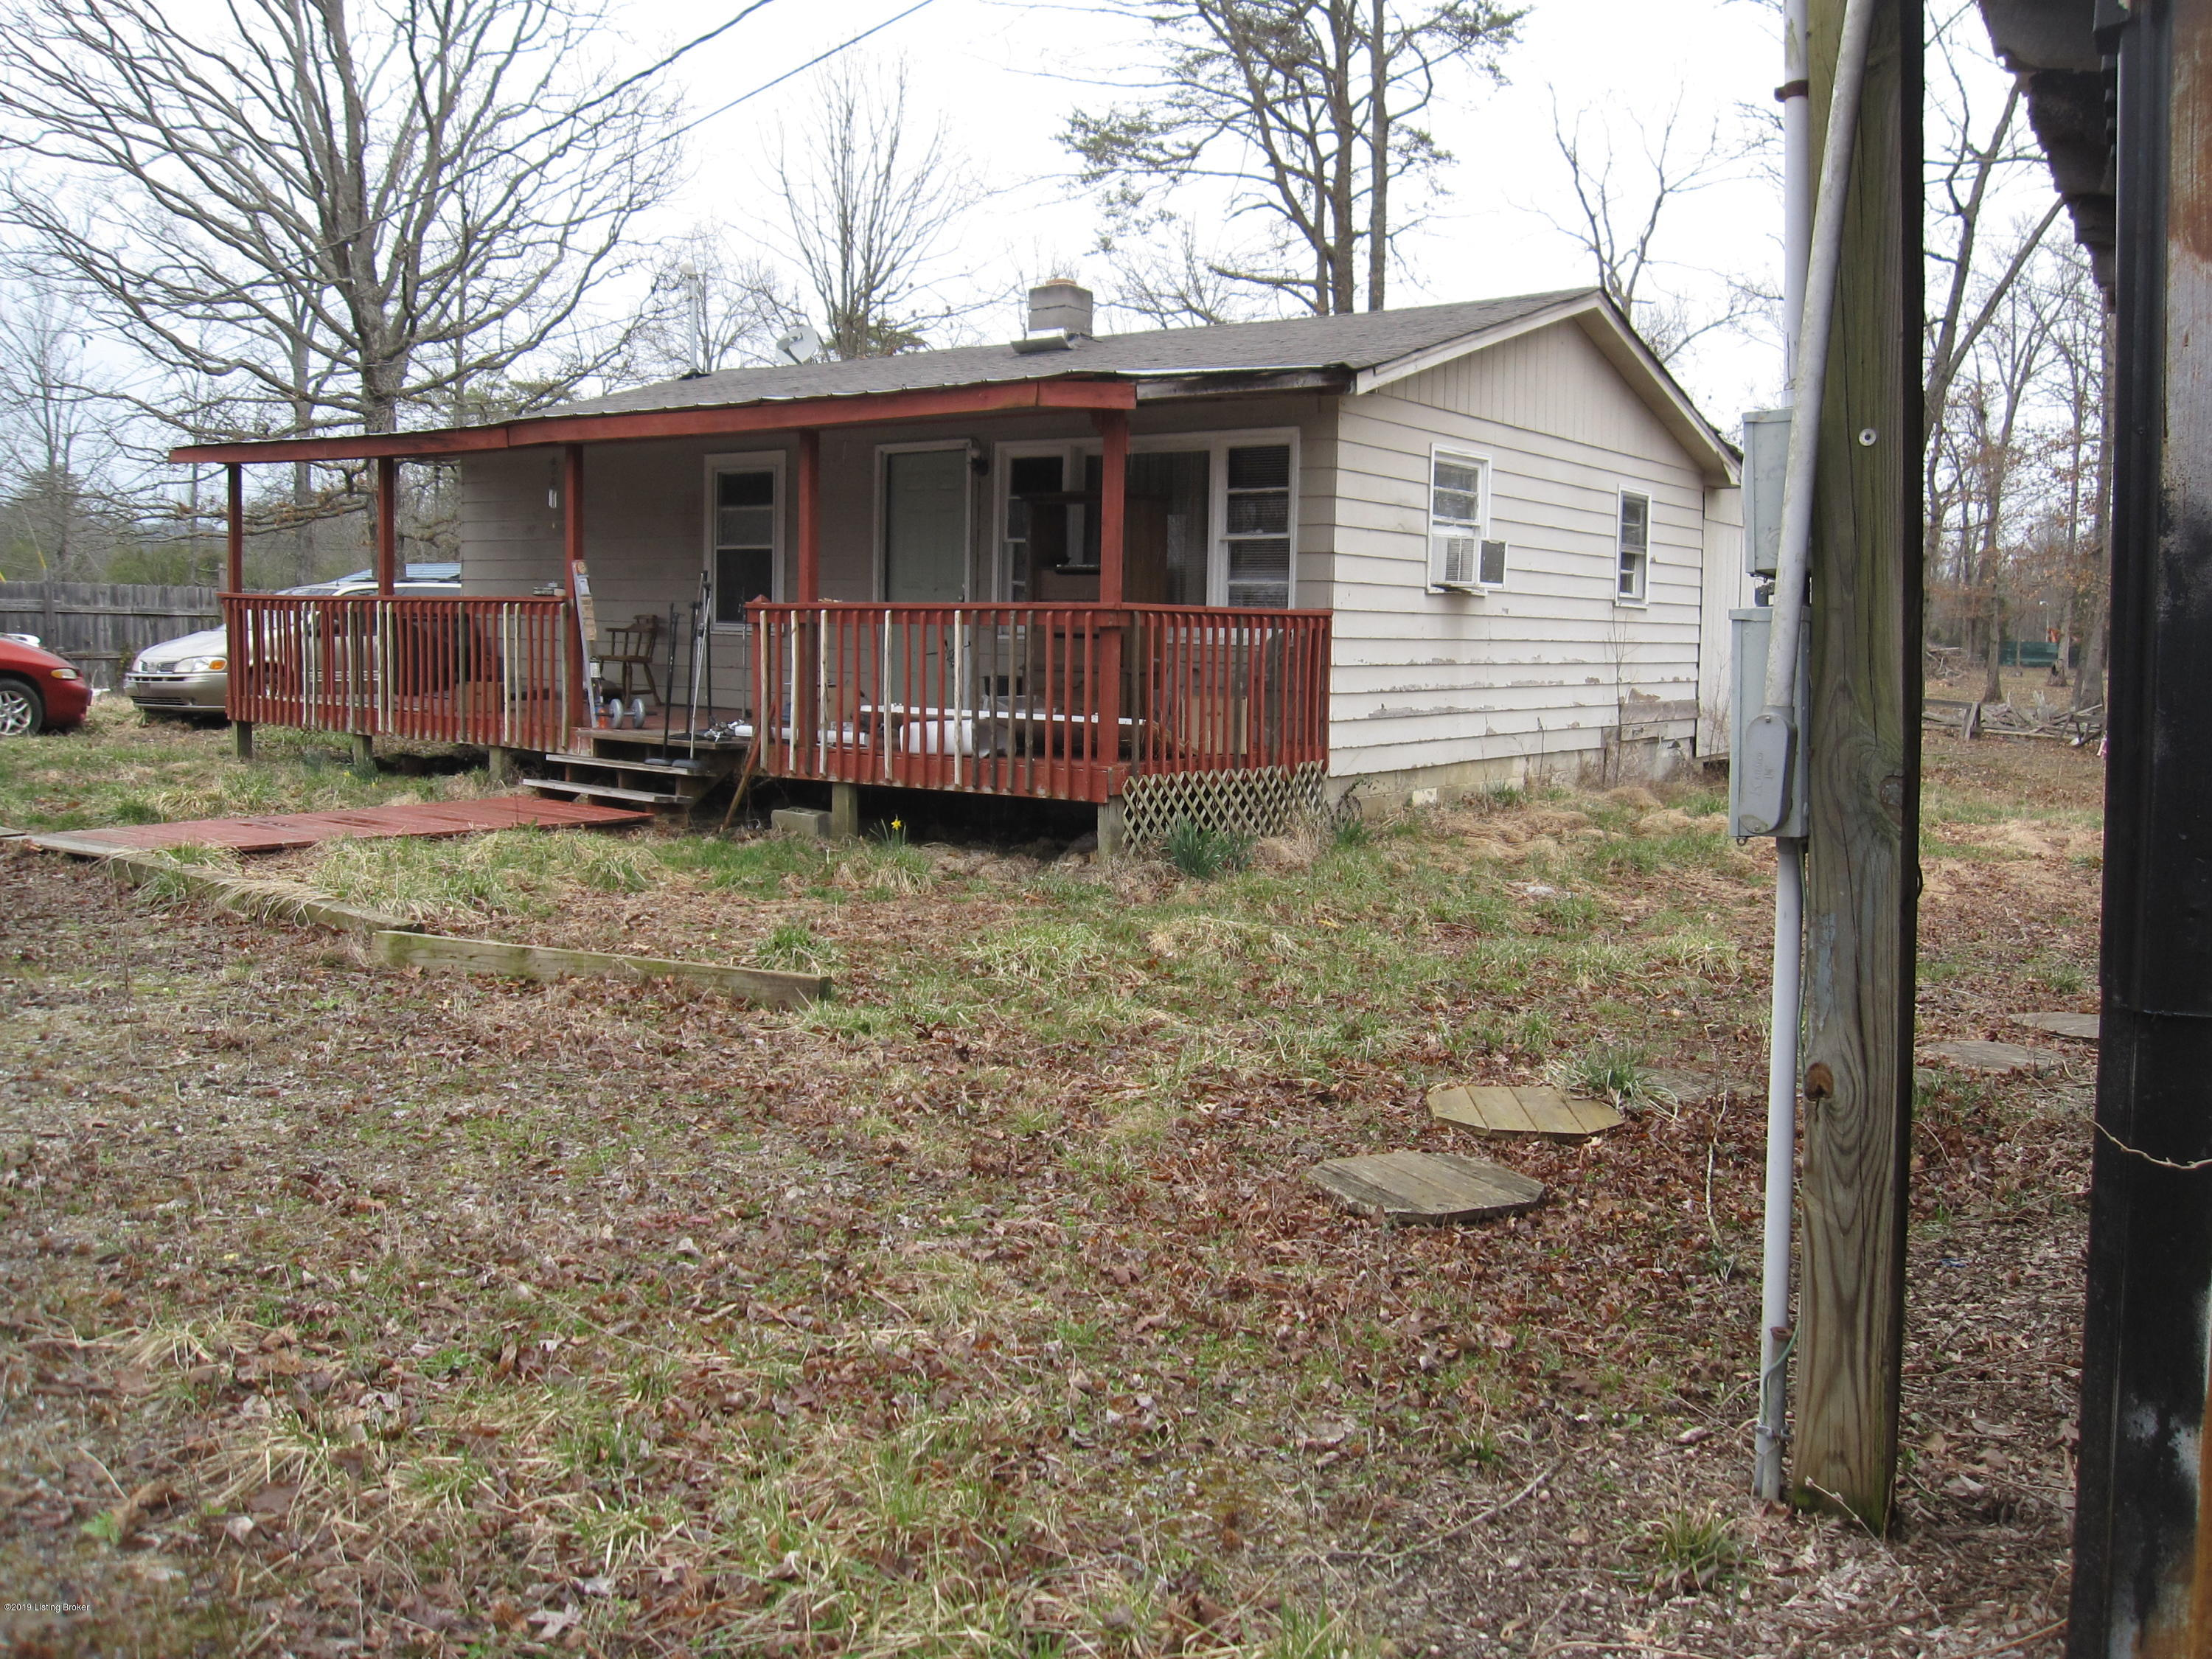 420 Pitts Point Rd, Shepherdsville, Kentucky 40165, 3 Bedrooms Bedrooms, 6 Rooms Rooms,1 BathroomBathrooms,Residential,For Sale,Pitts Point,1528089